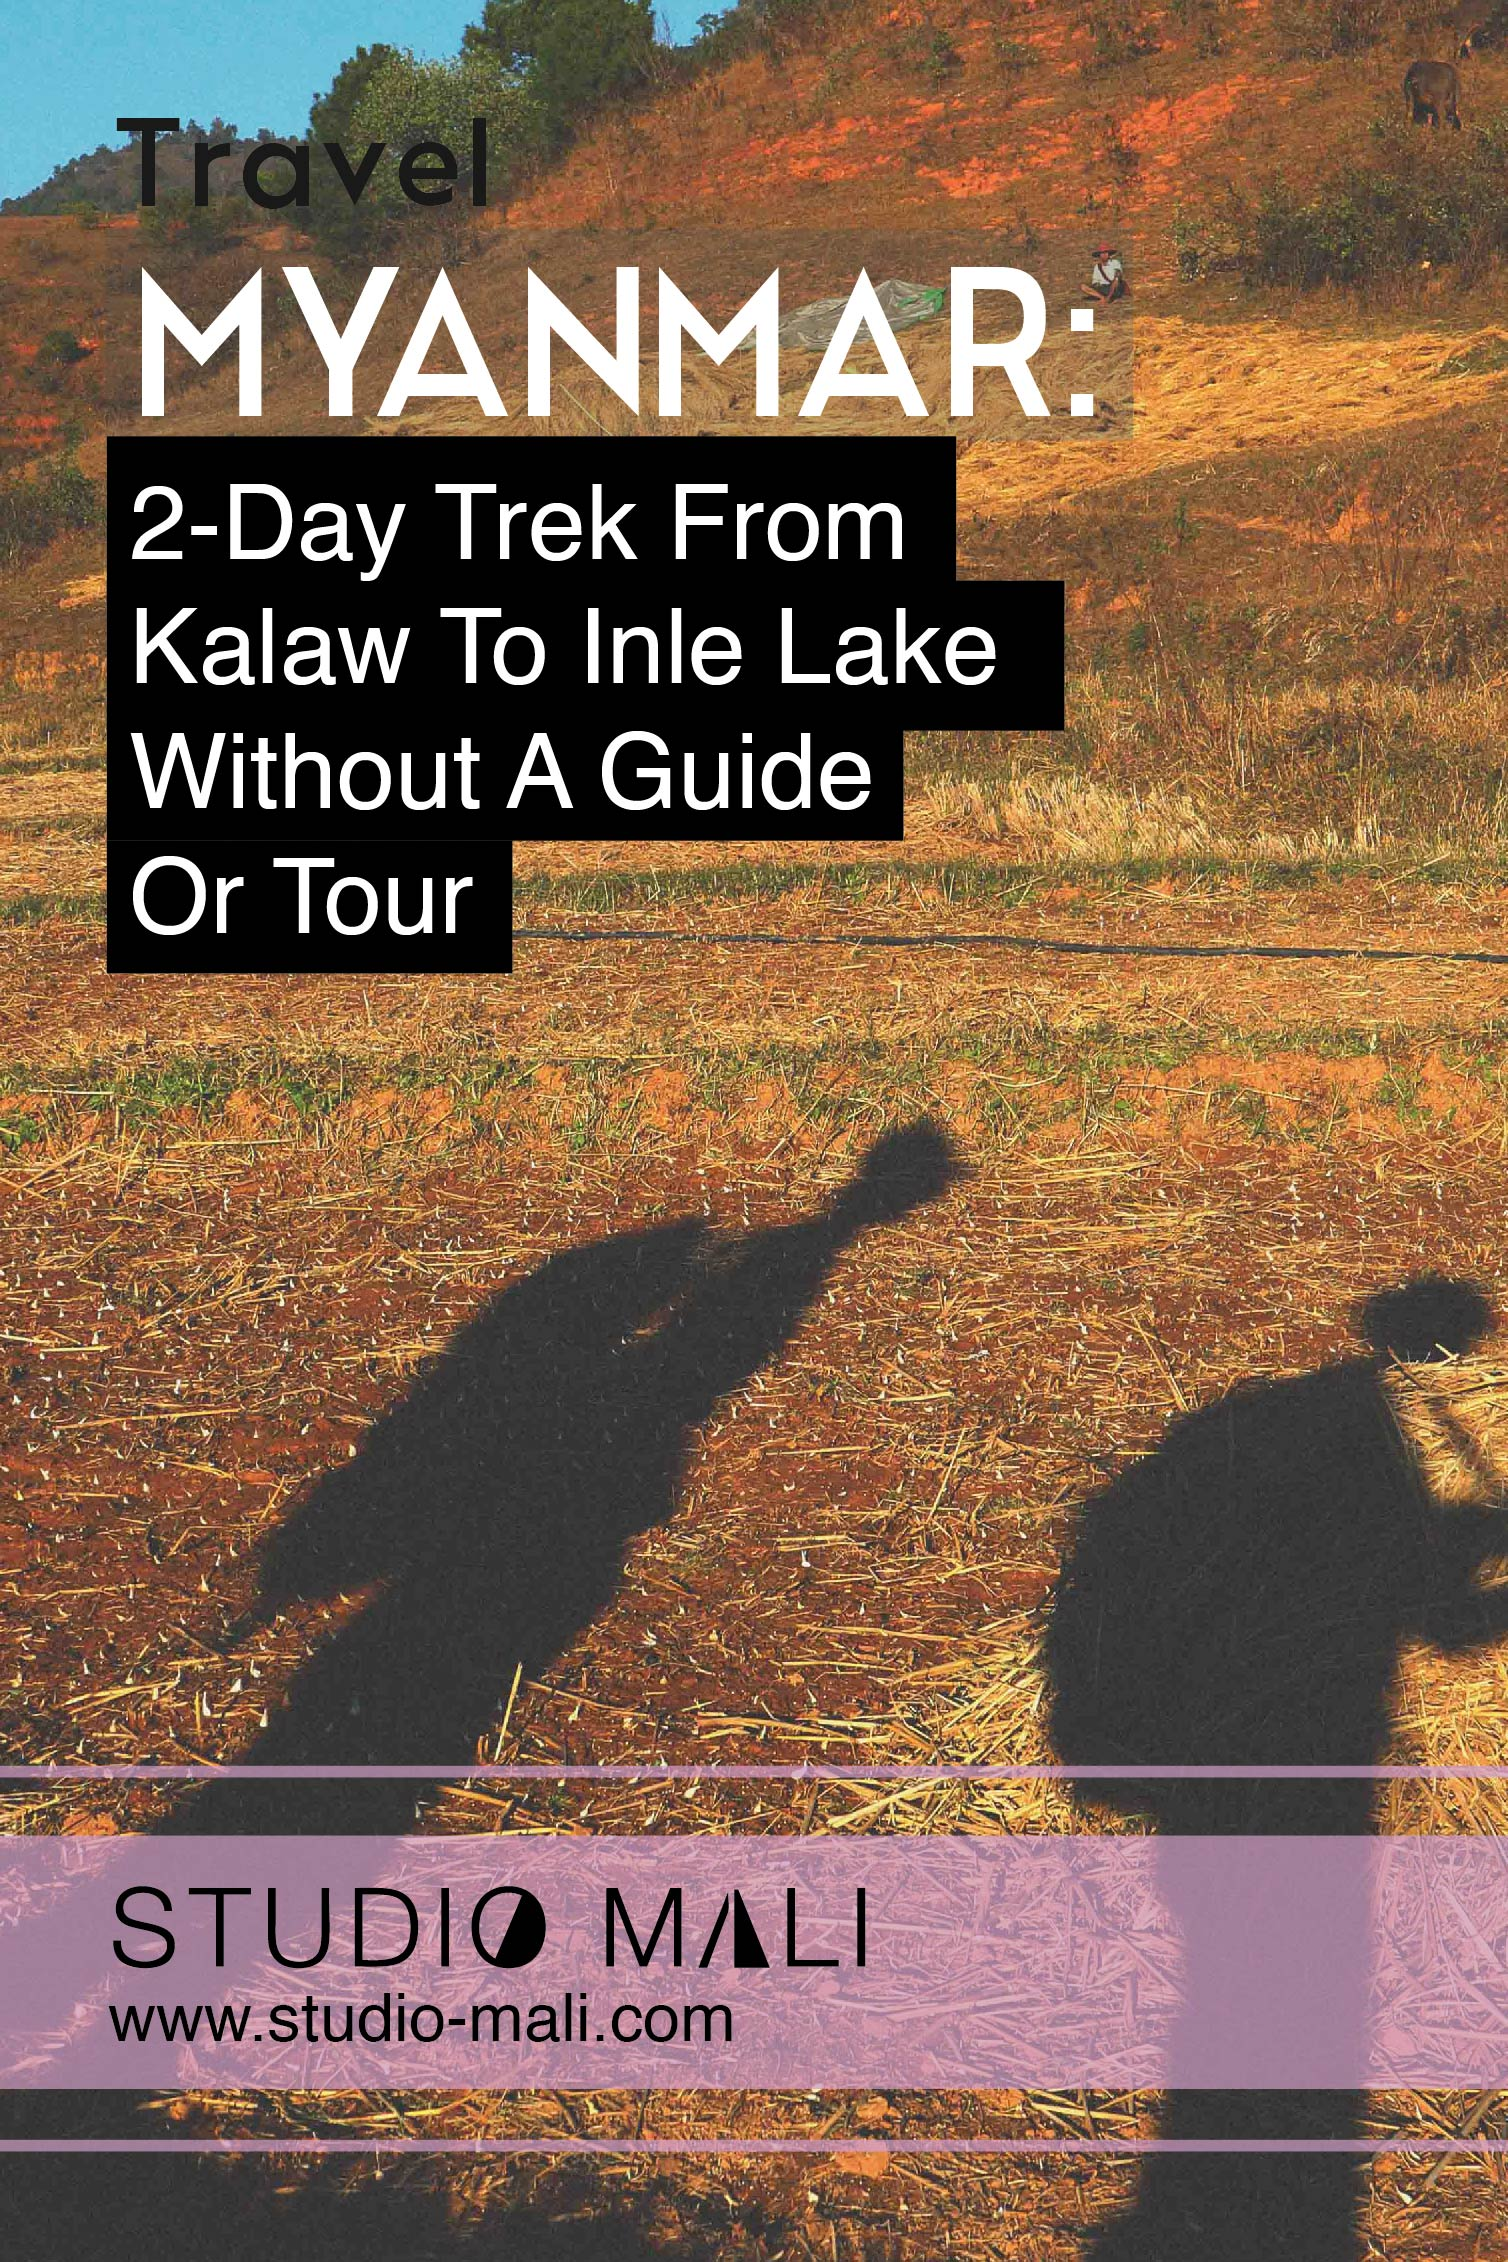 Myanmar - 2-Day Trek From Kalaw To Inle Lake Without A Guide Or Tour, By Studio Mali